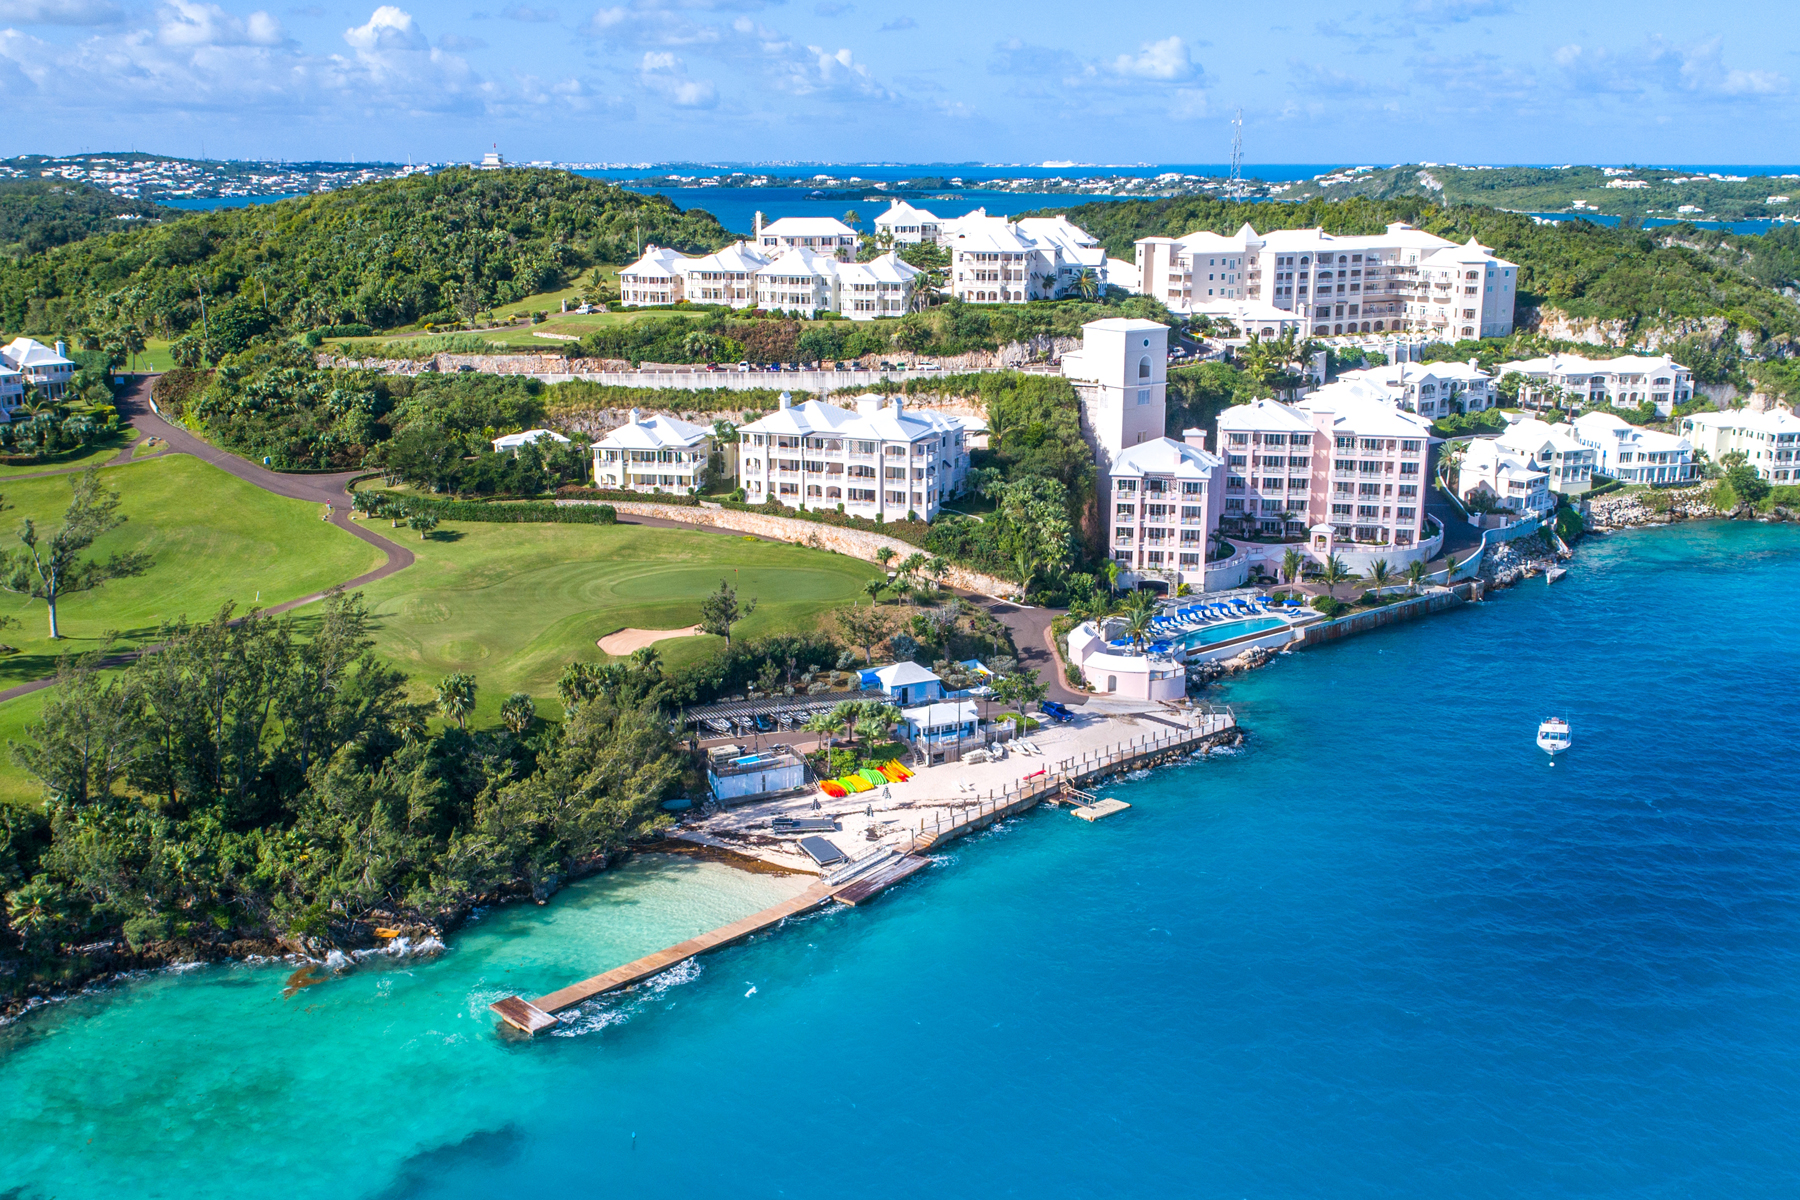 fractional ownership prop for Sale at Tucker's Point Harbour Court - 3 Bedroom Hamilton Parish, Other Areas In Bermuda Bermuda